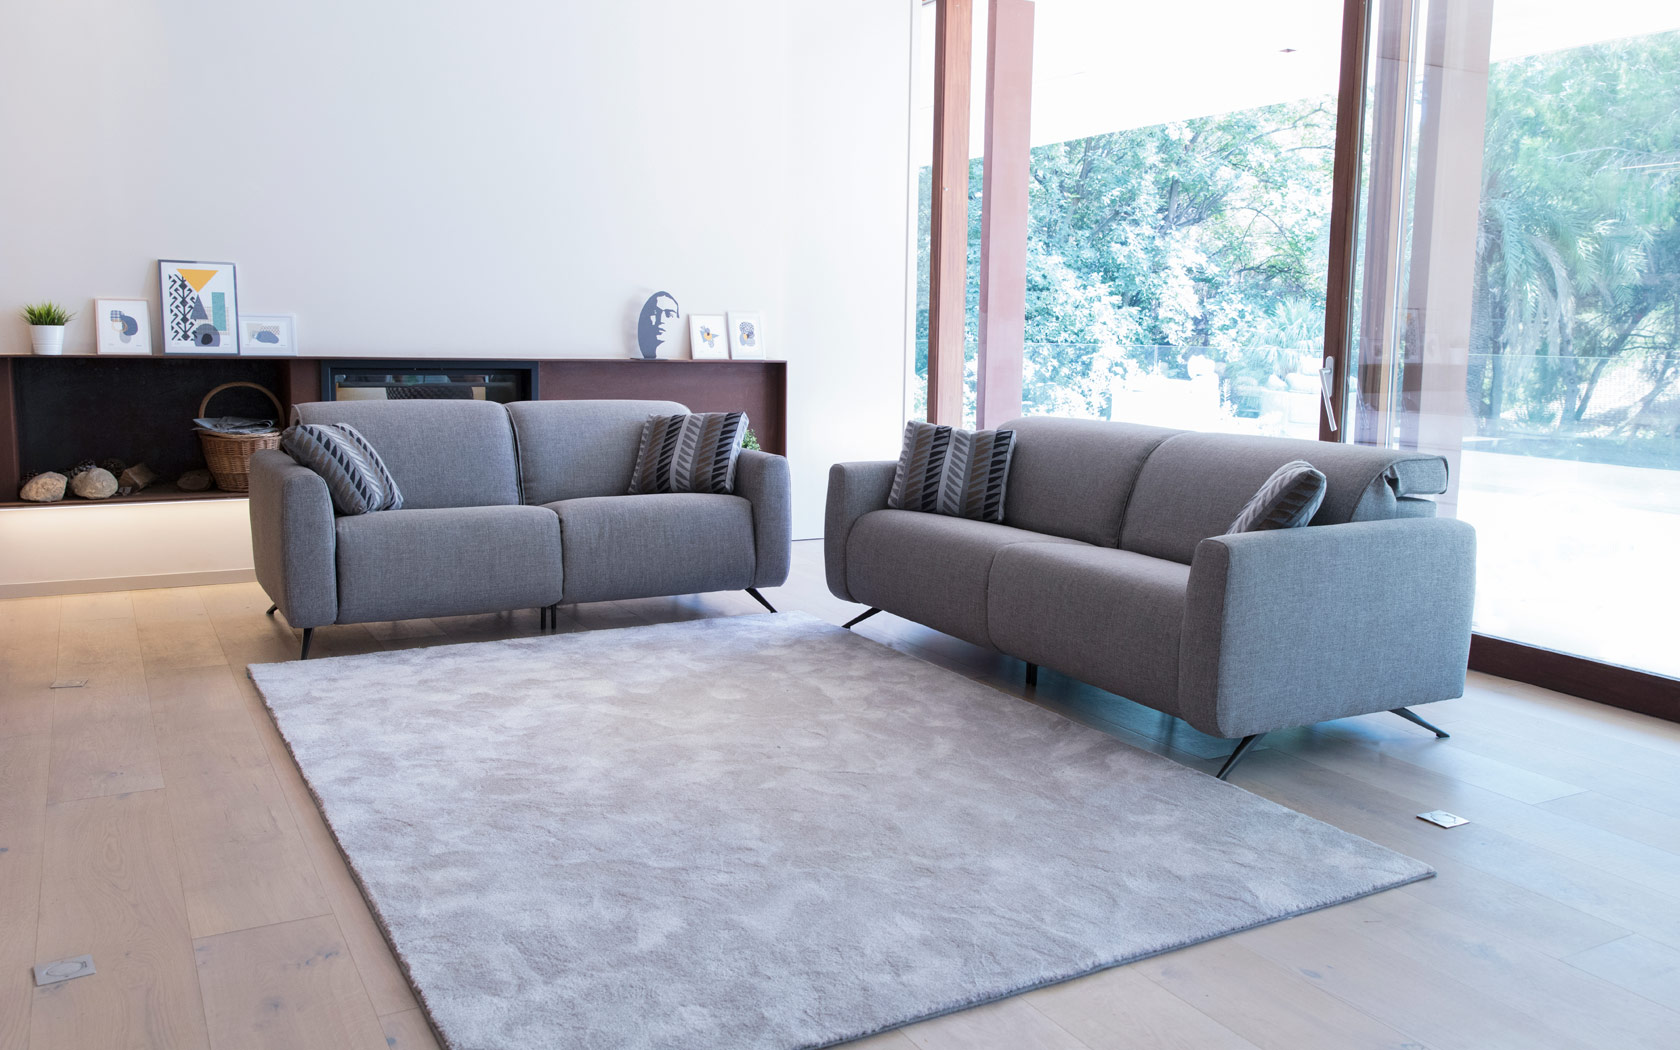 Baltia sofa relax 2020 05